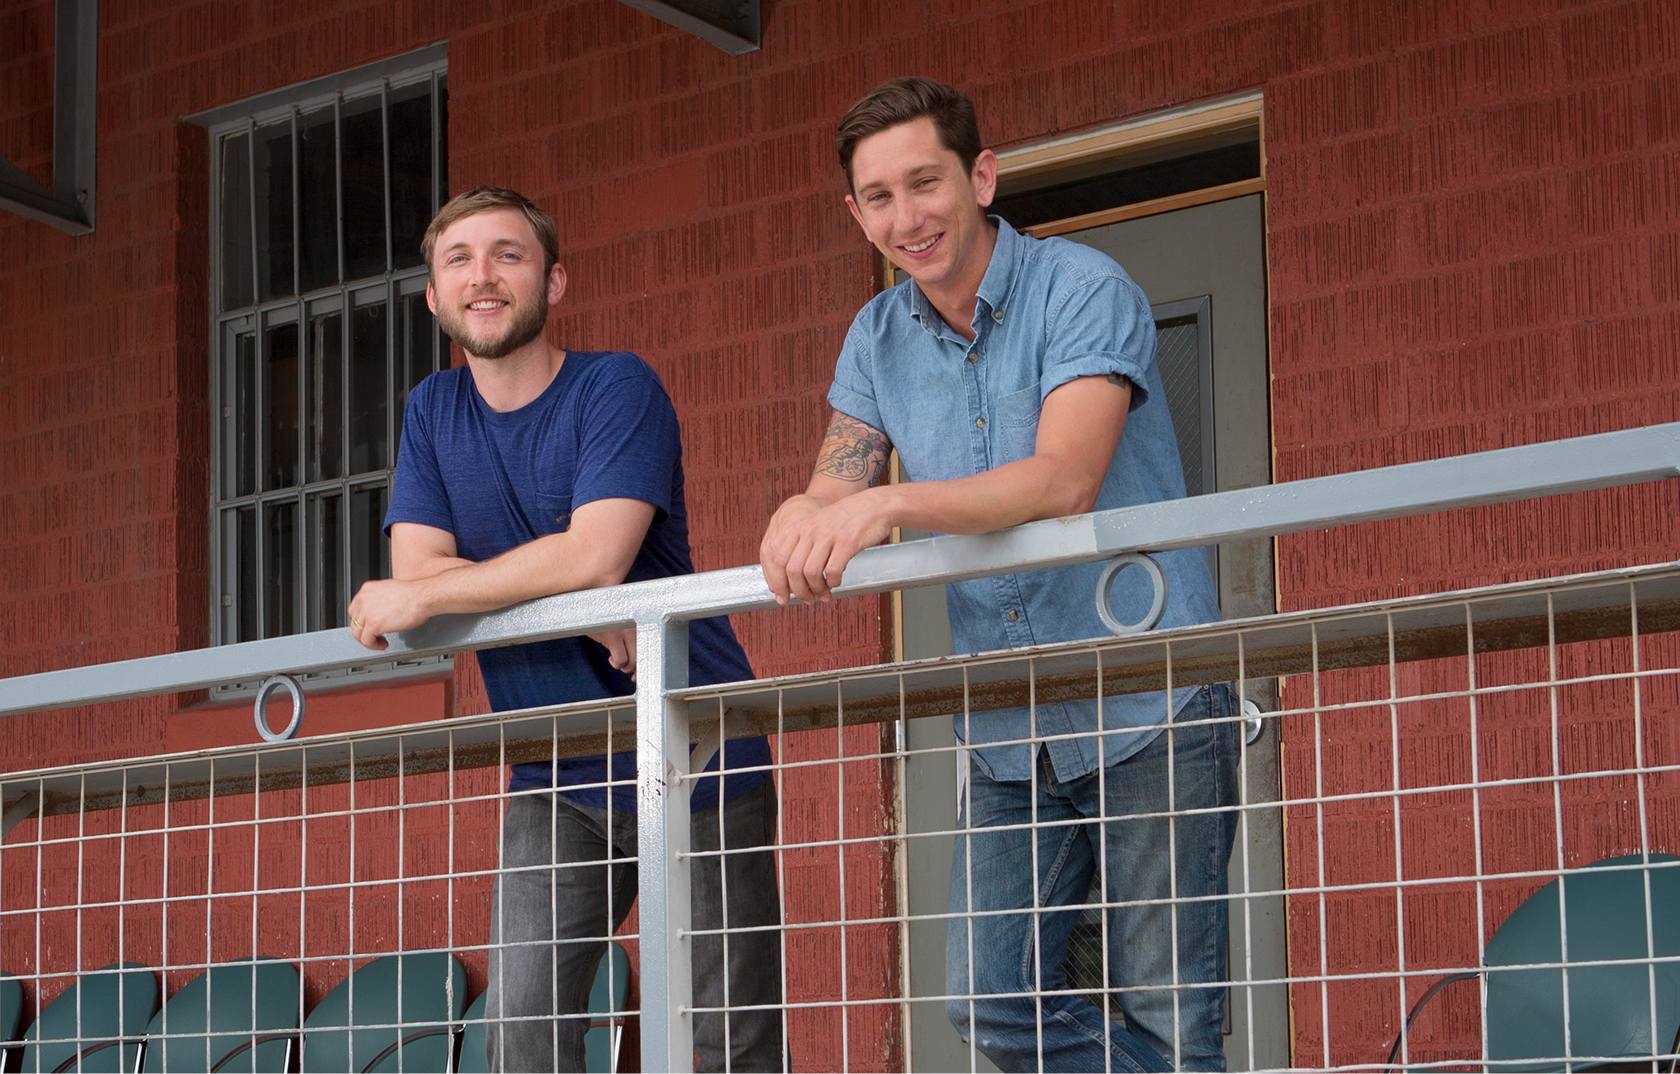 Two men smiling and leaning on a railing